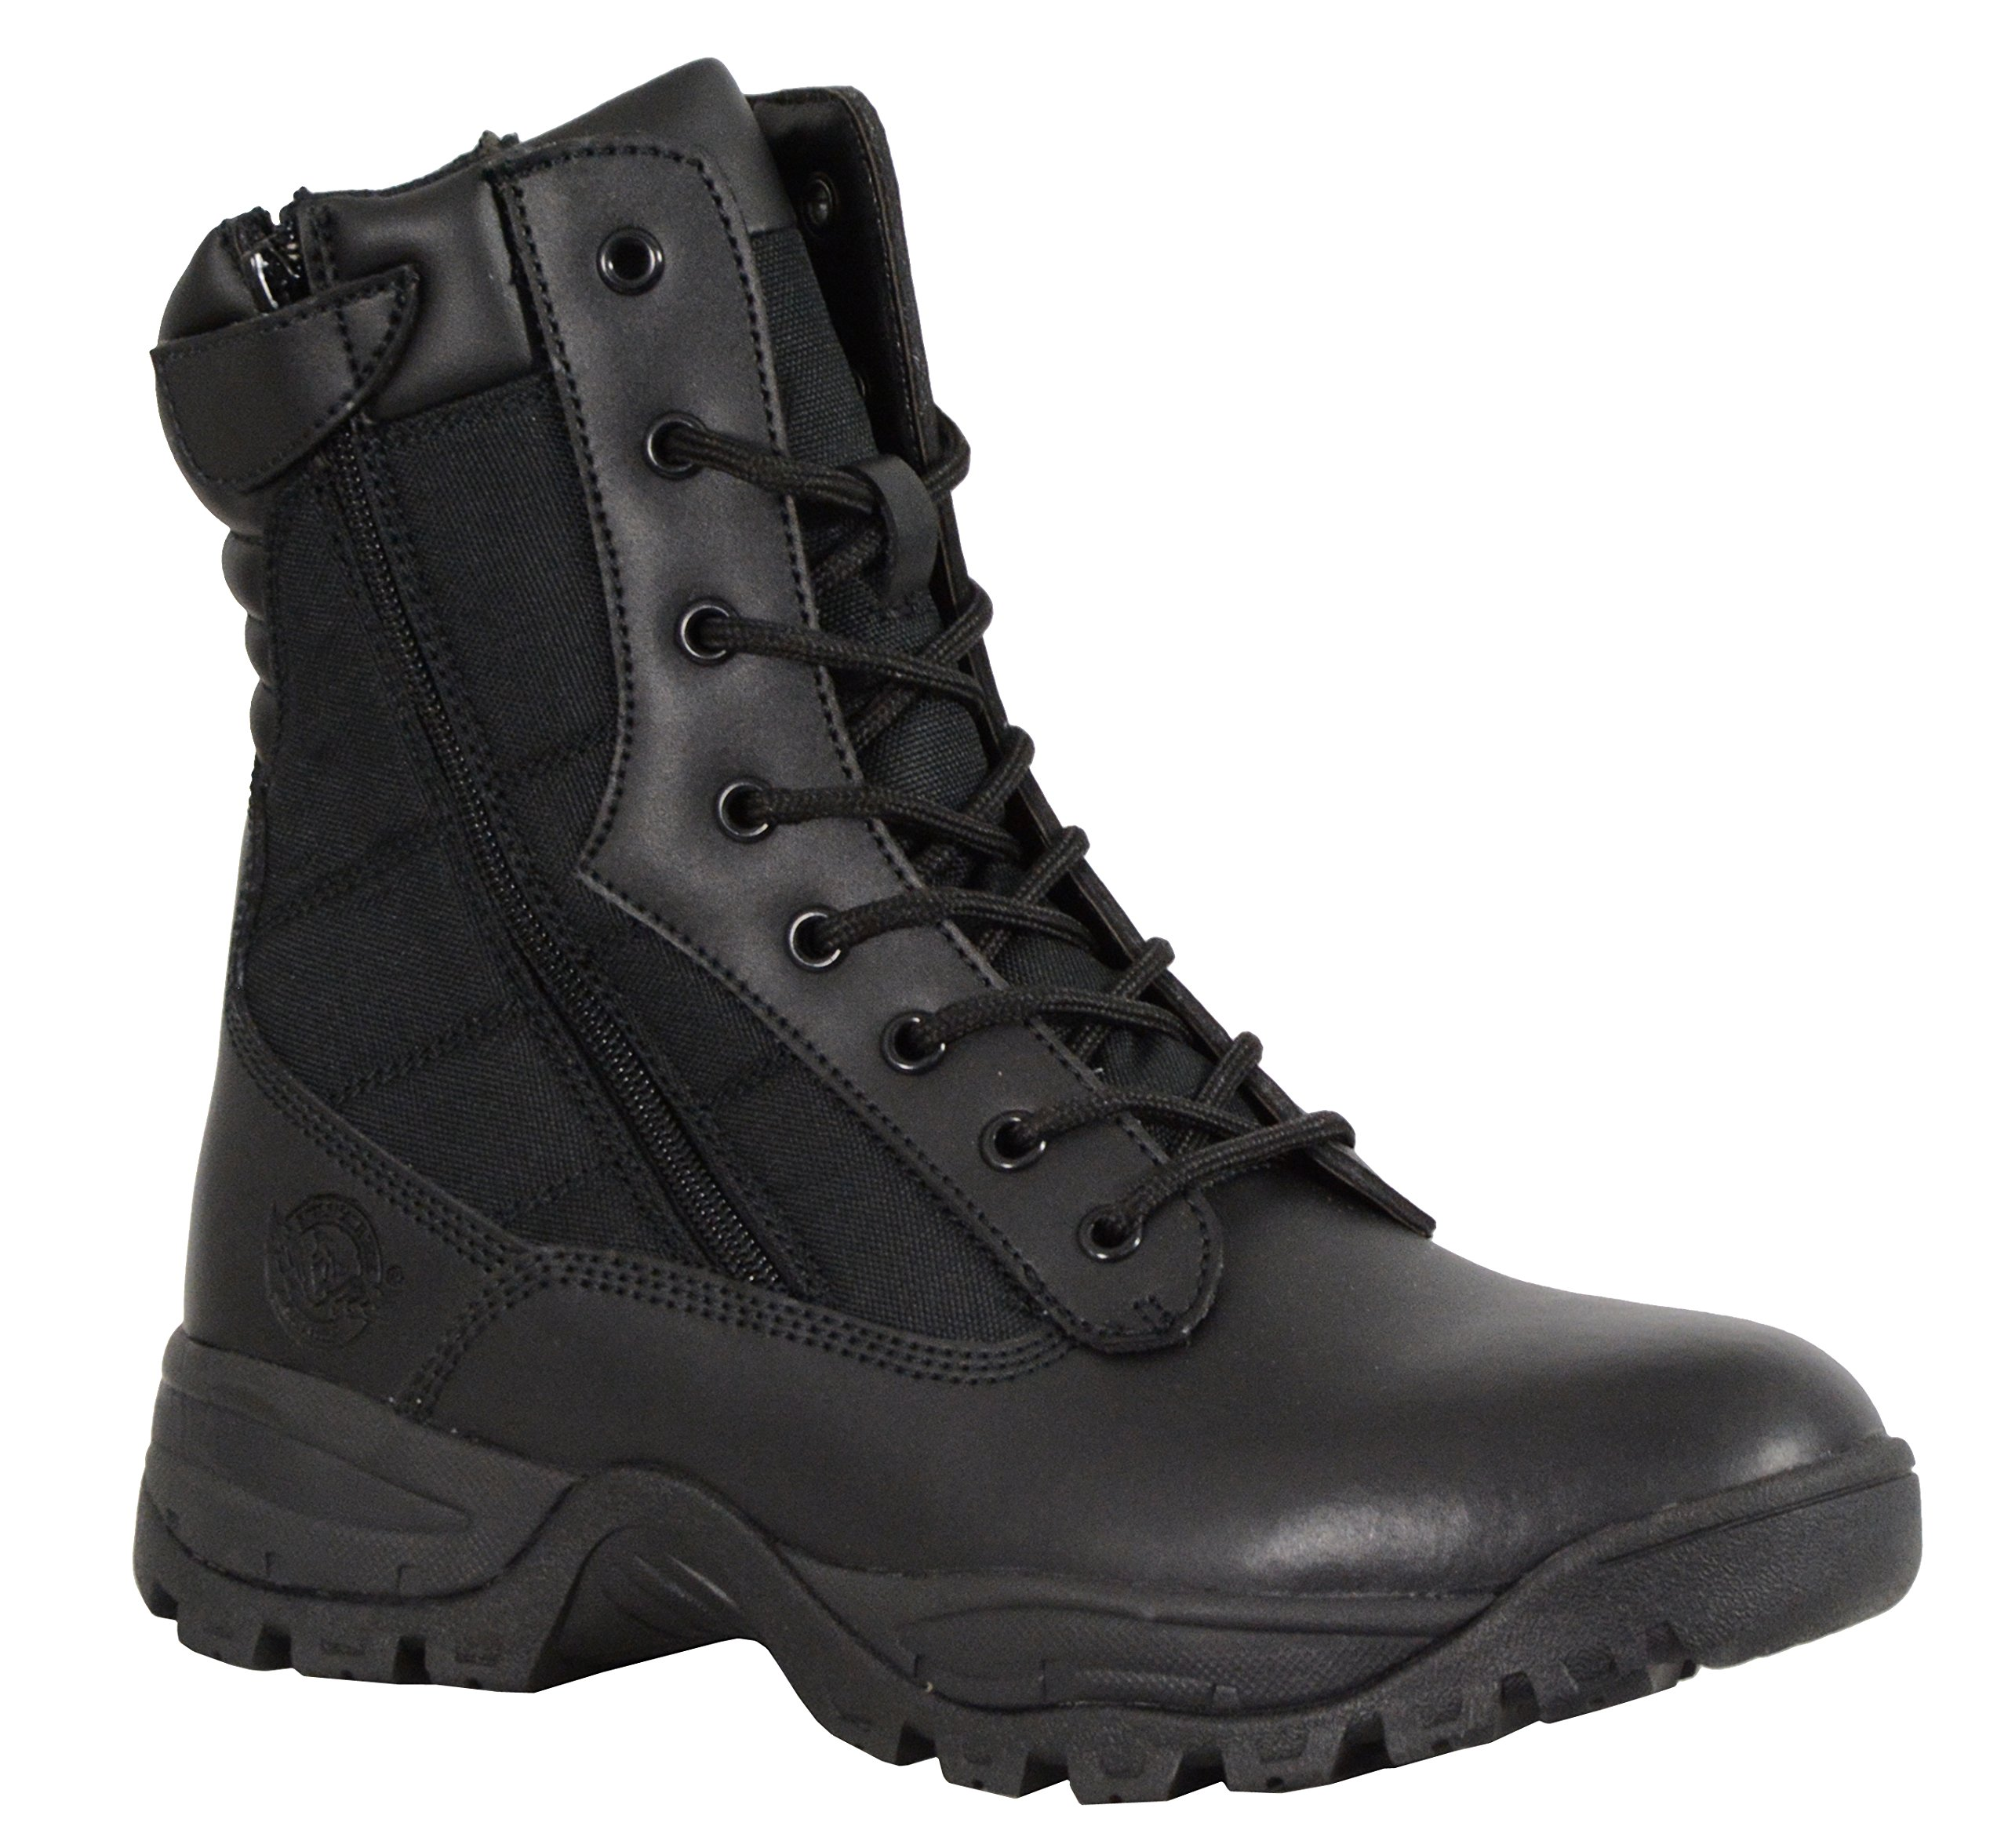 Milwaukee Performance Men's Leather Tactical Boots with Side Zipper (Black, Size 12) (9'')